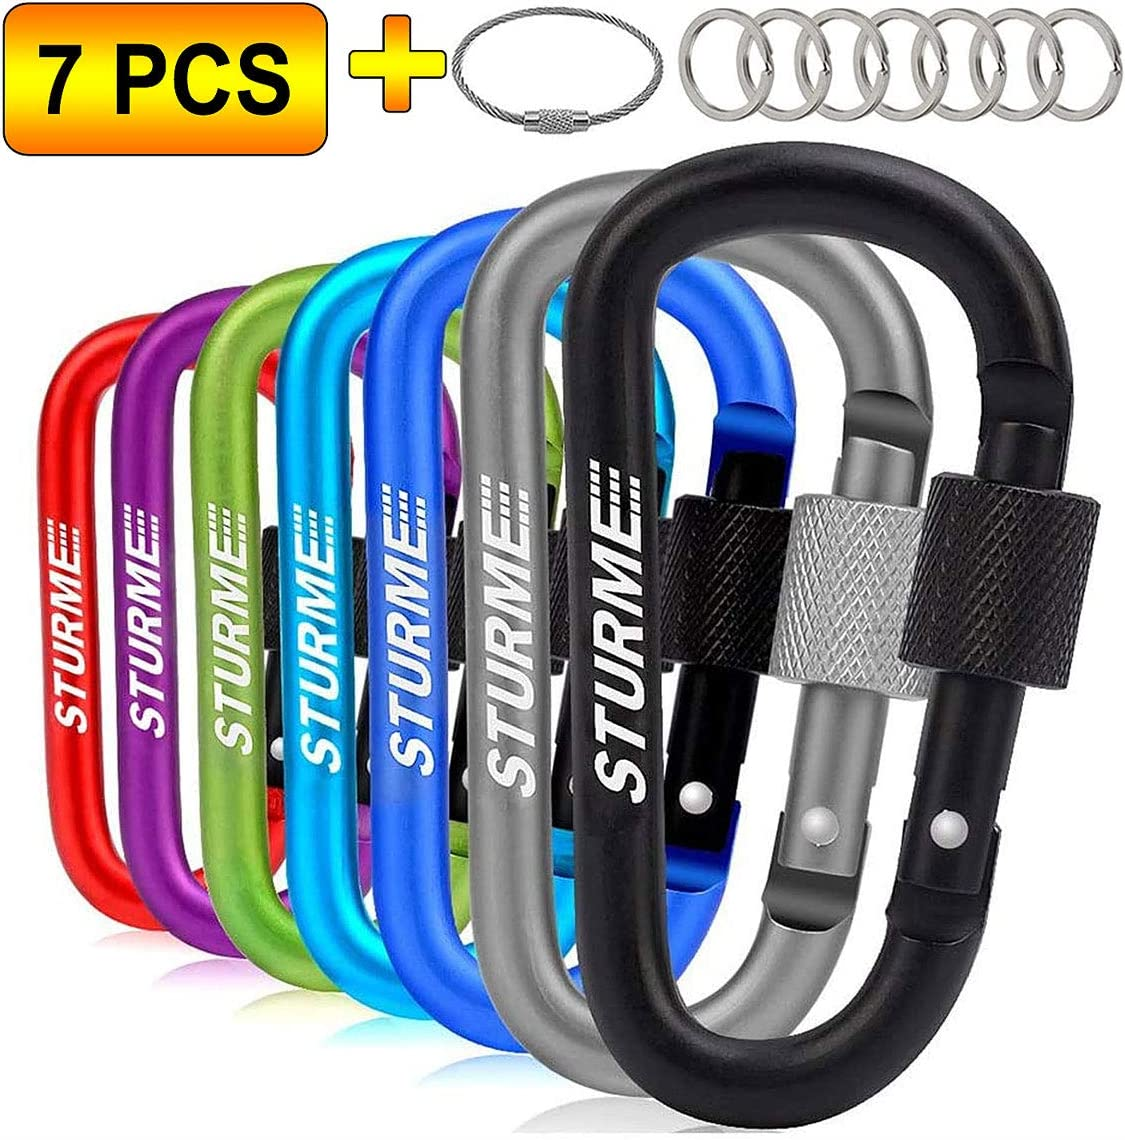 "STURME Carabiner Clip 3"" Aluminum D-Ring Locking Durable Strong and Light Large Carabiners Clip Set for Outdoor Camping Screw Gate Lock Hooks Spring Link Improved Design Pack"